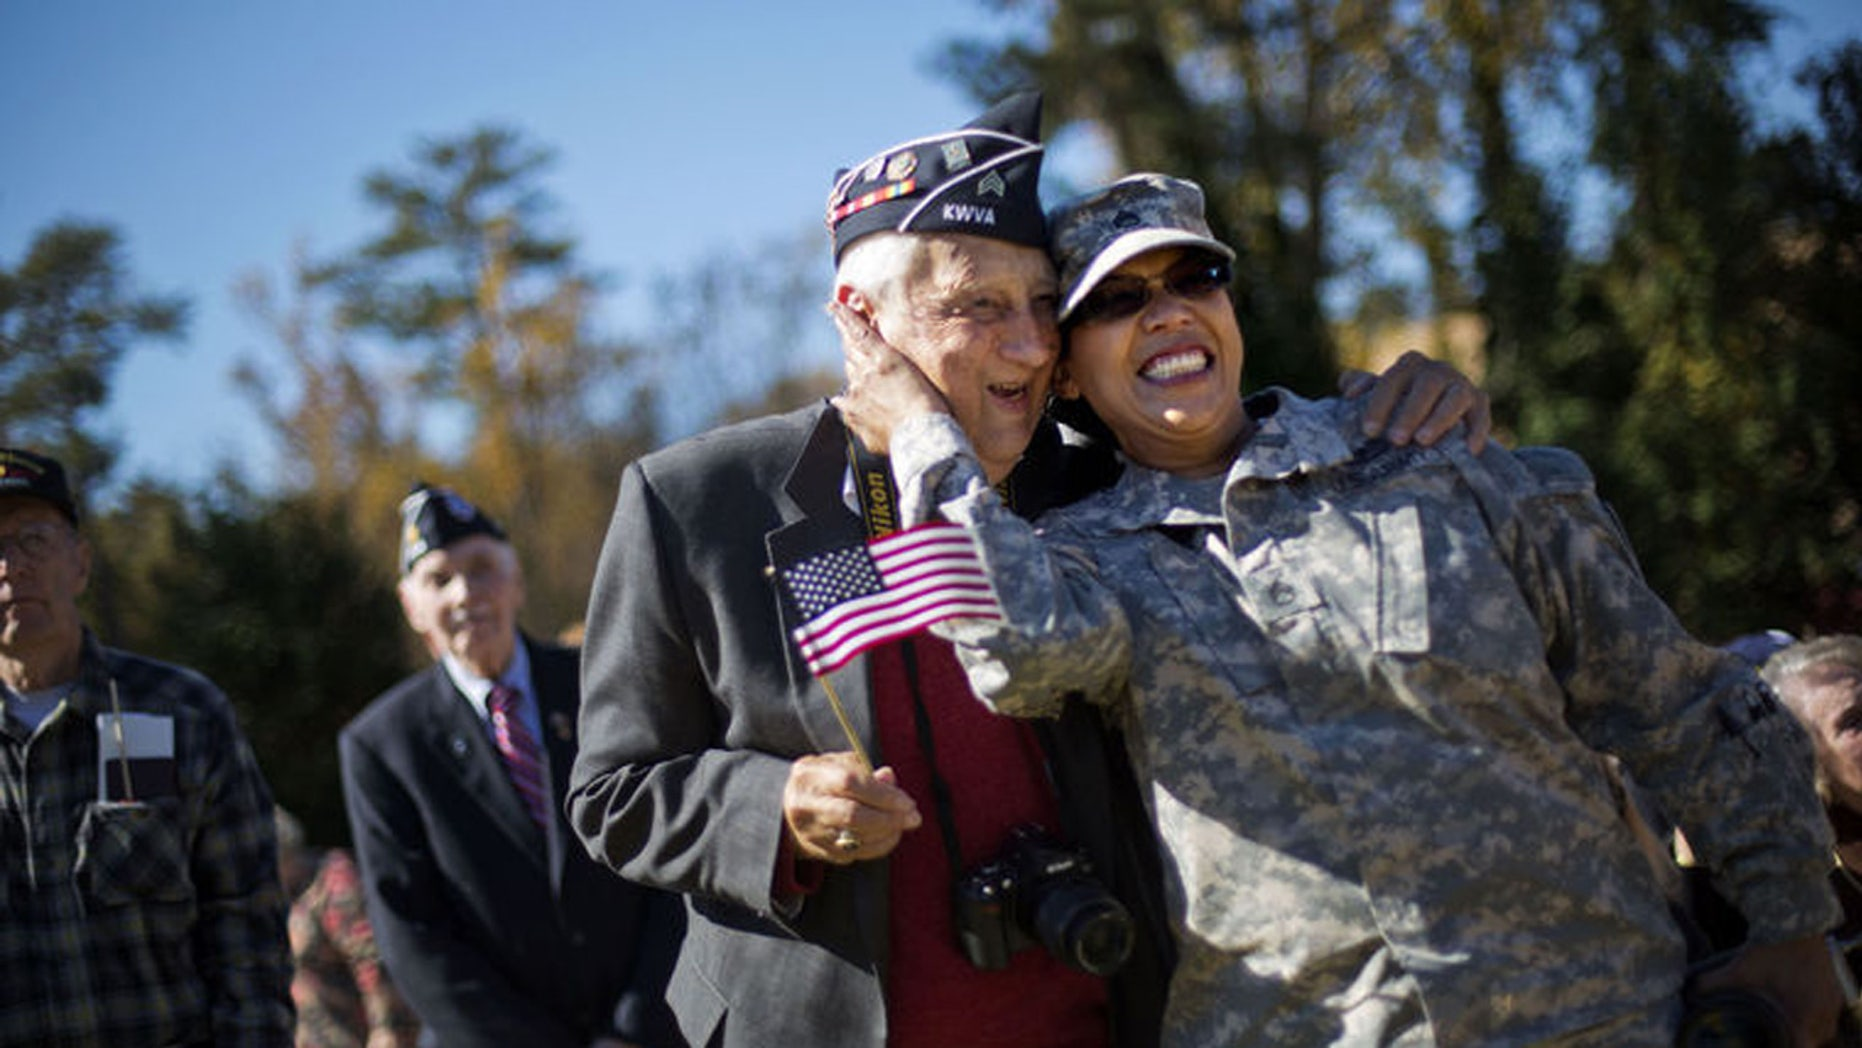 Veterans young and old have advice to share from their global travels.